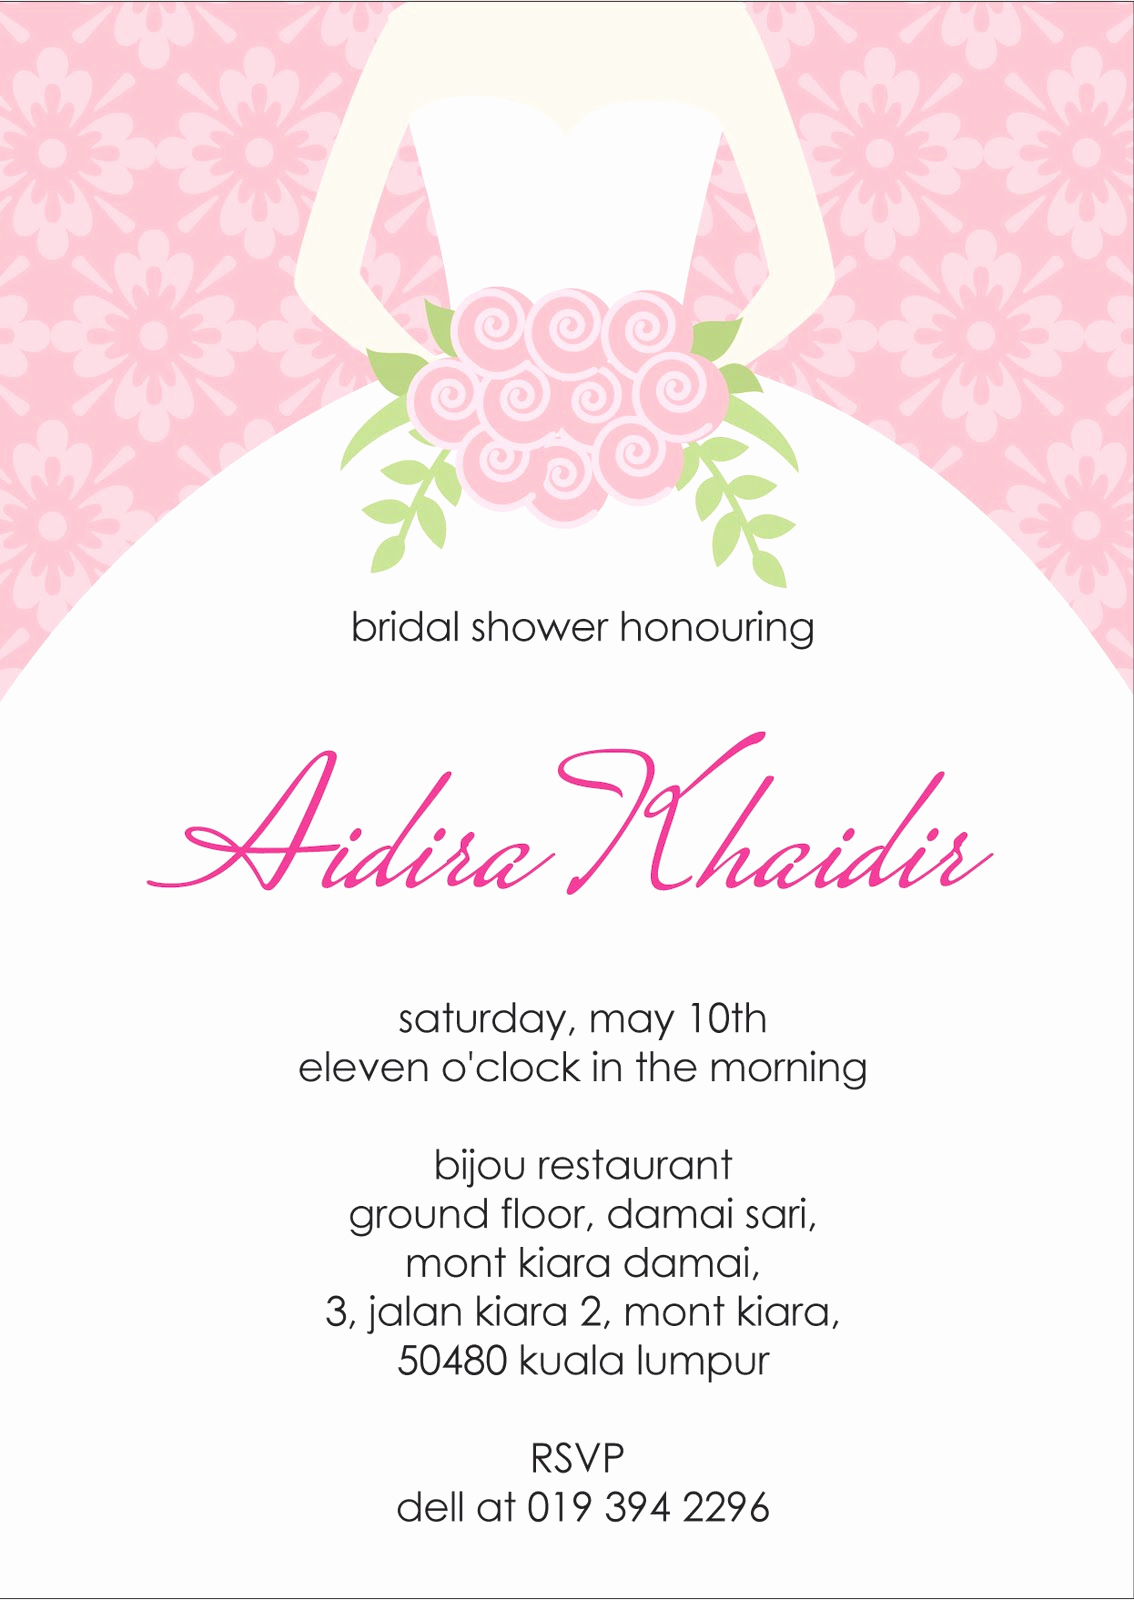 Free Bridal Shower Invitation Templates Beautiful Your One Stop Wedding Centre Ts Deco Favors and